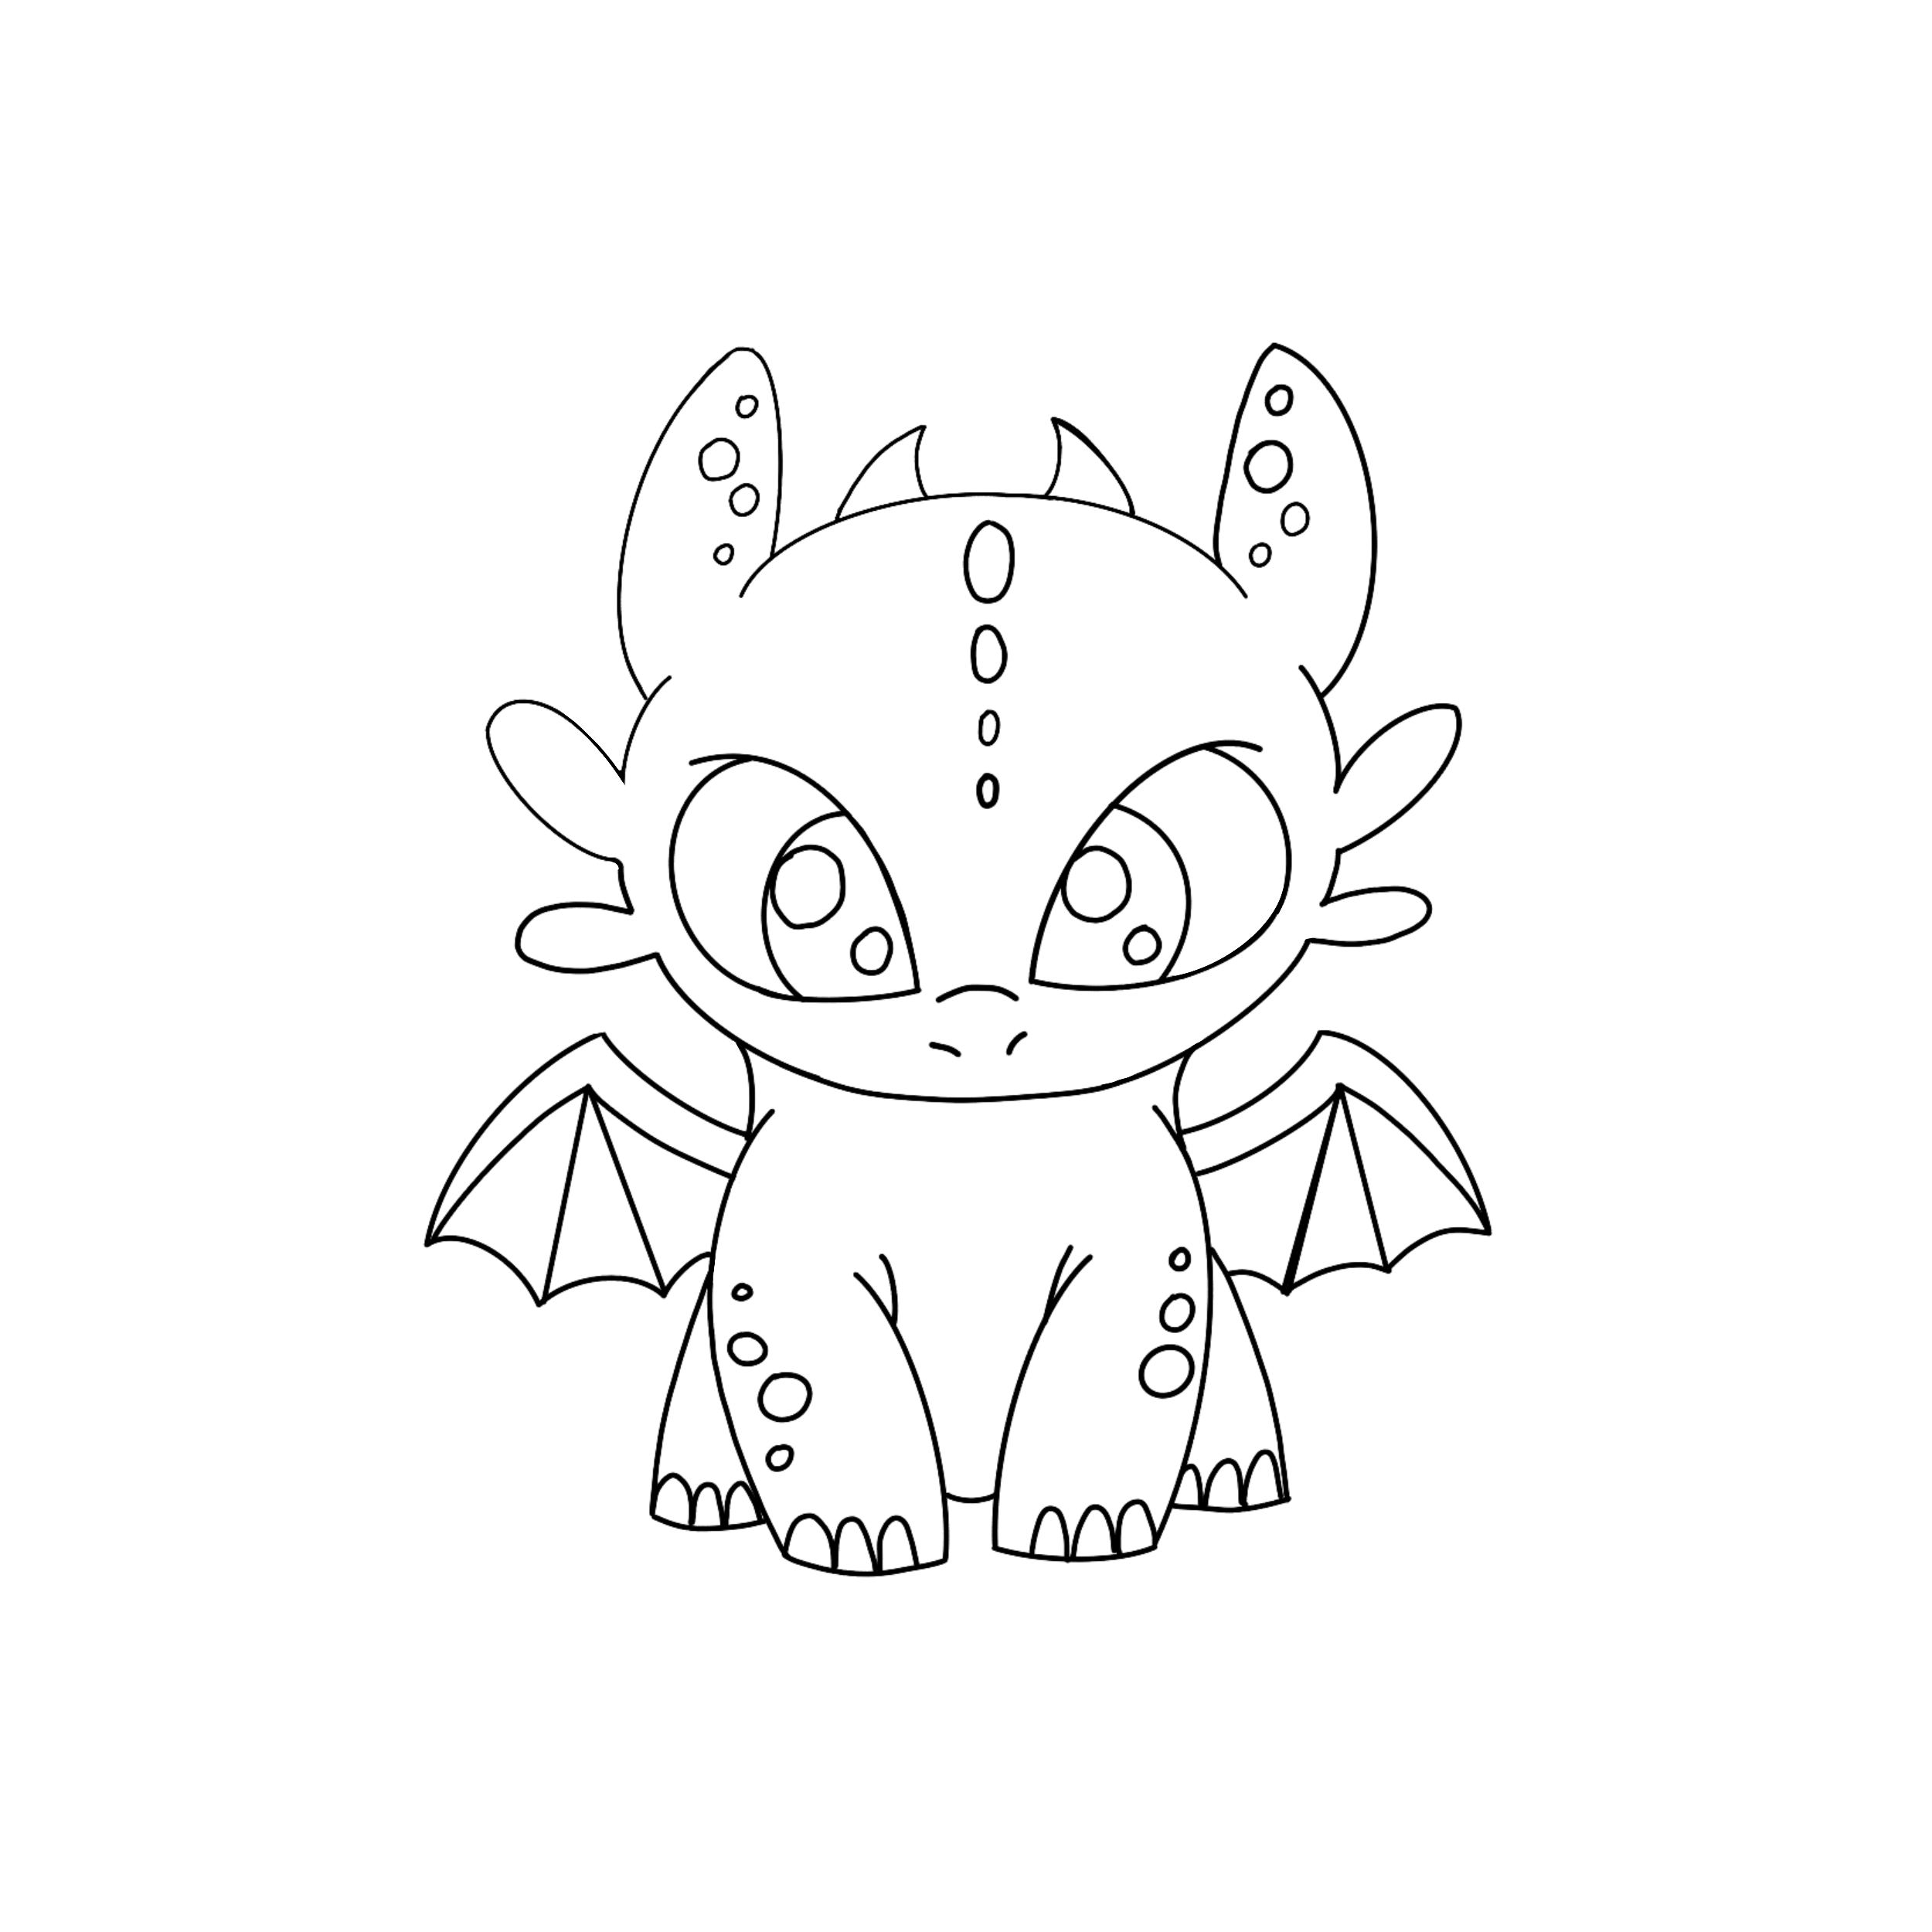 Cute Baby Dragon Coloring Pages For Kids In 2020 Unicorn Coloring Pages Dragon Coloring Page Disney Coloring Pages